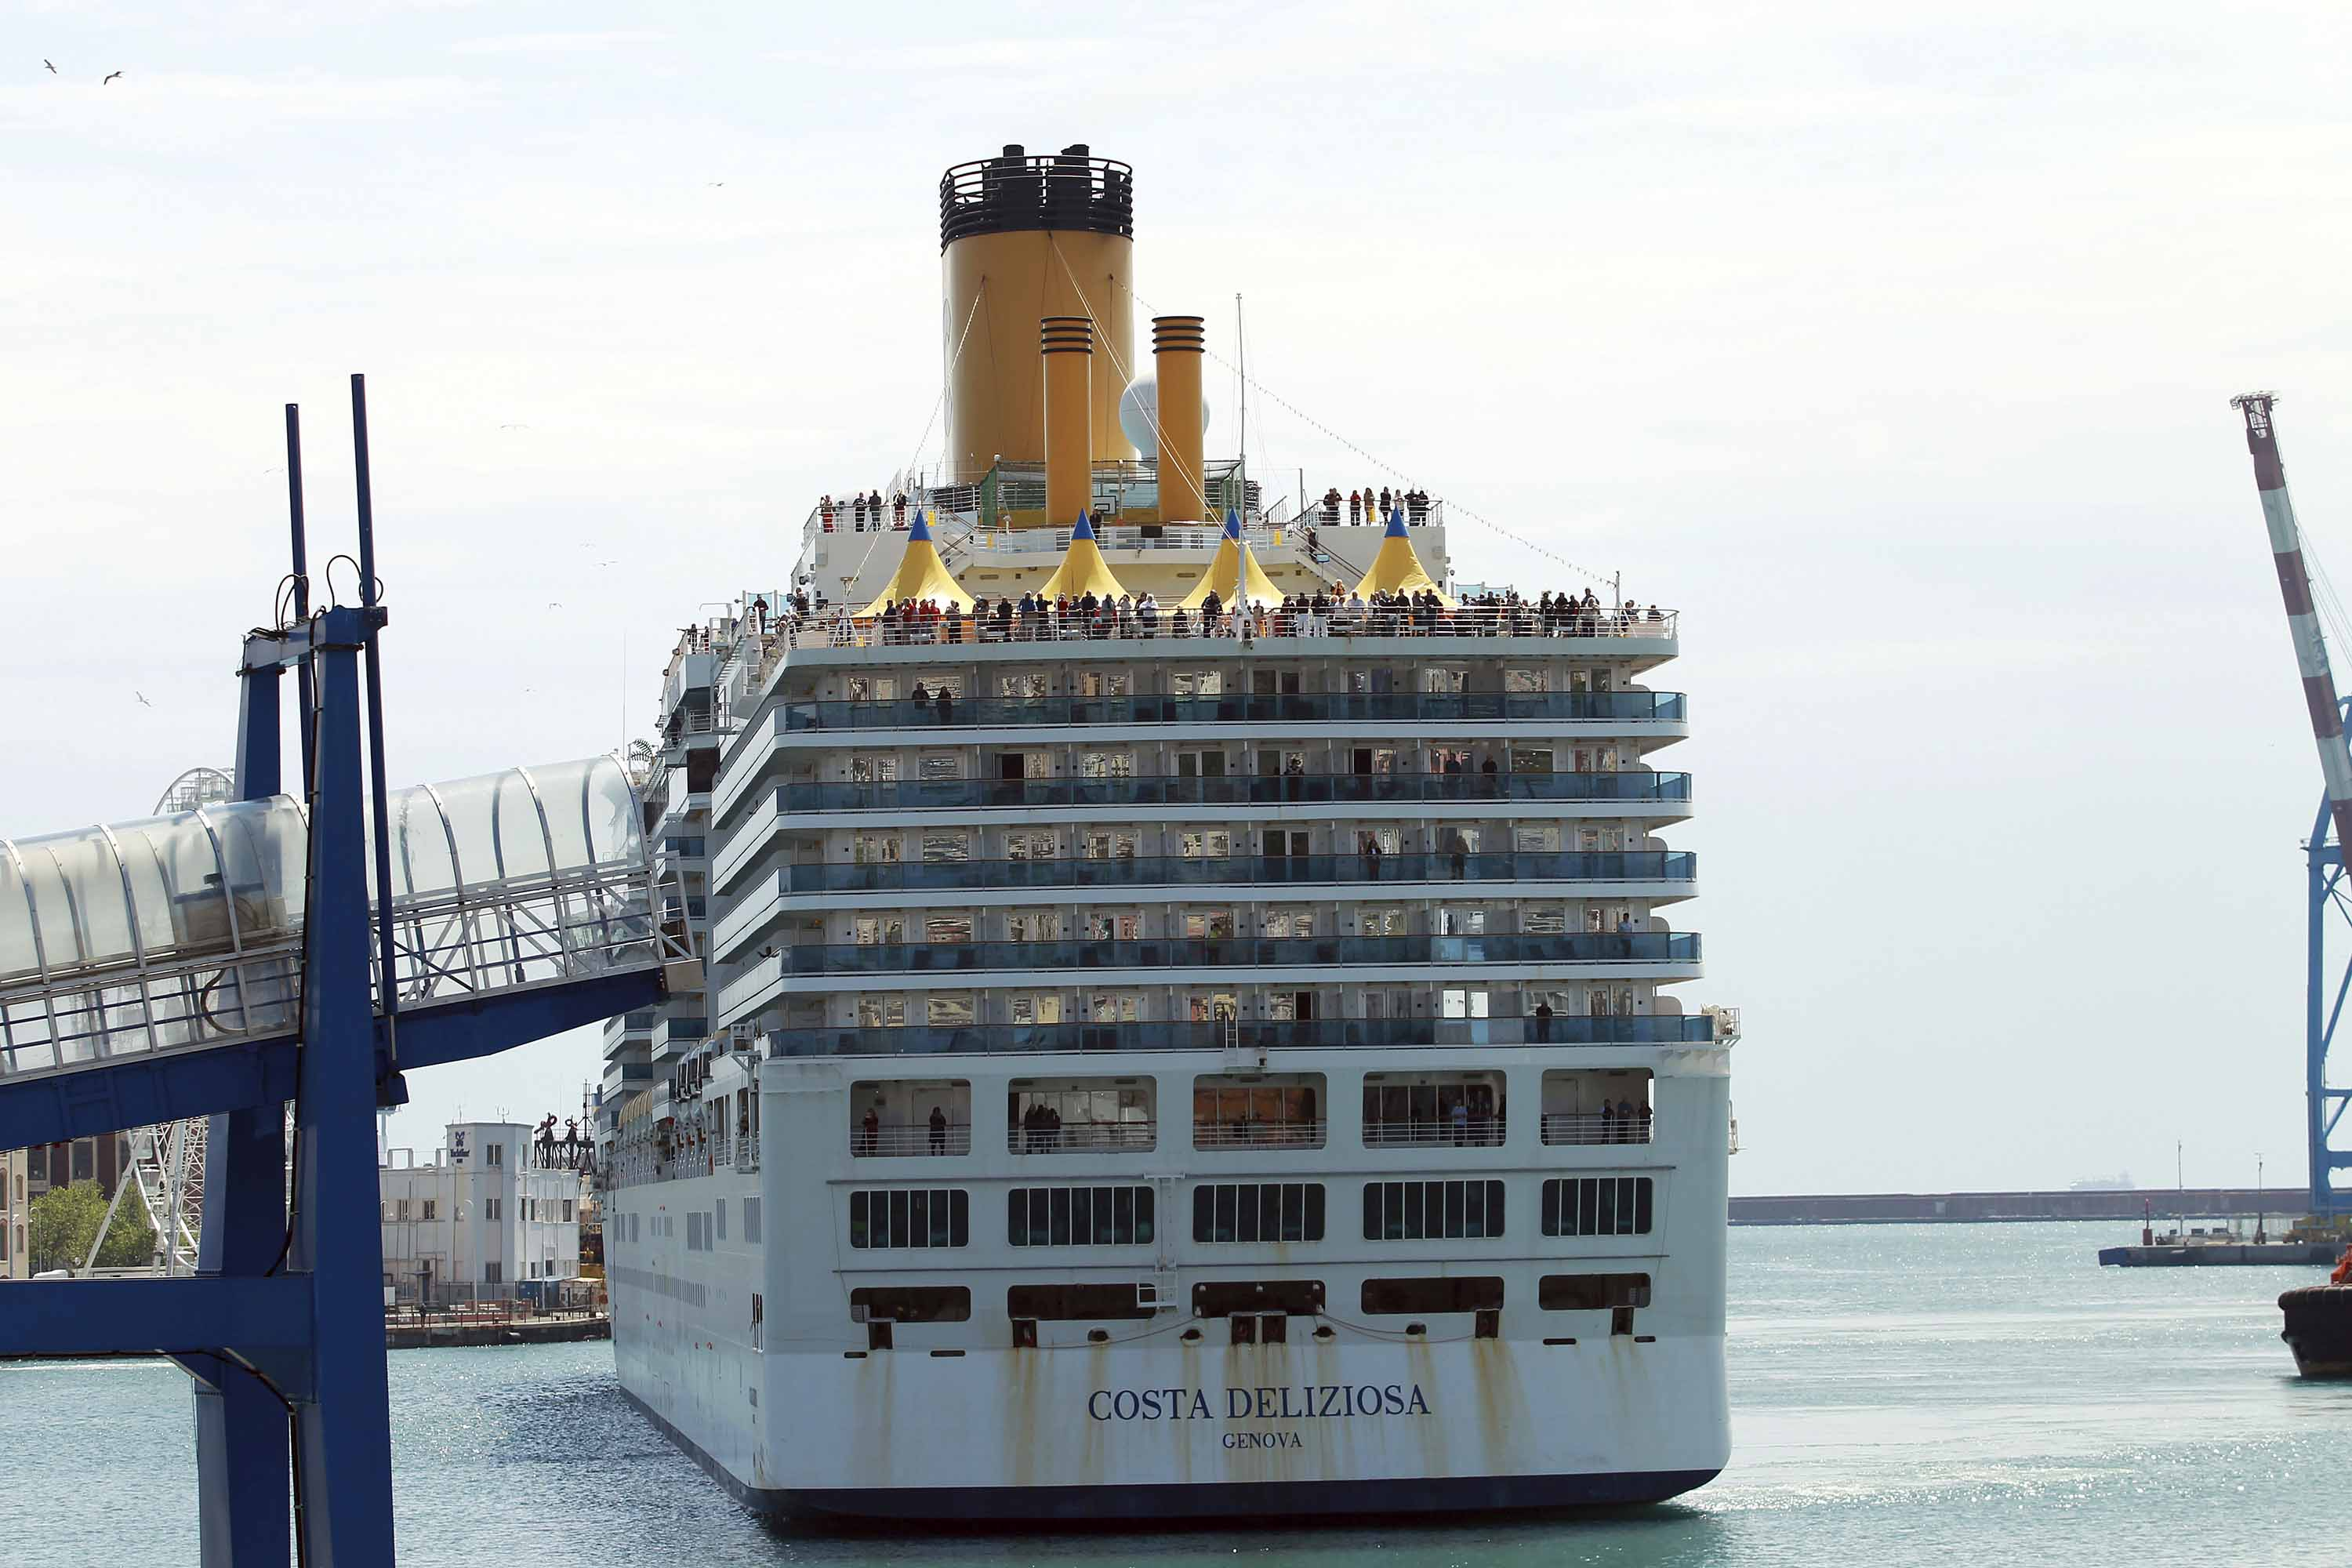 The Costa Deliziosa cruise ship docks in the port of Genoa, Italy, on Wednesday.